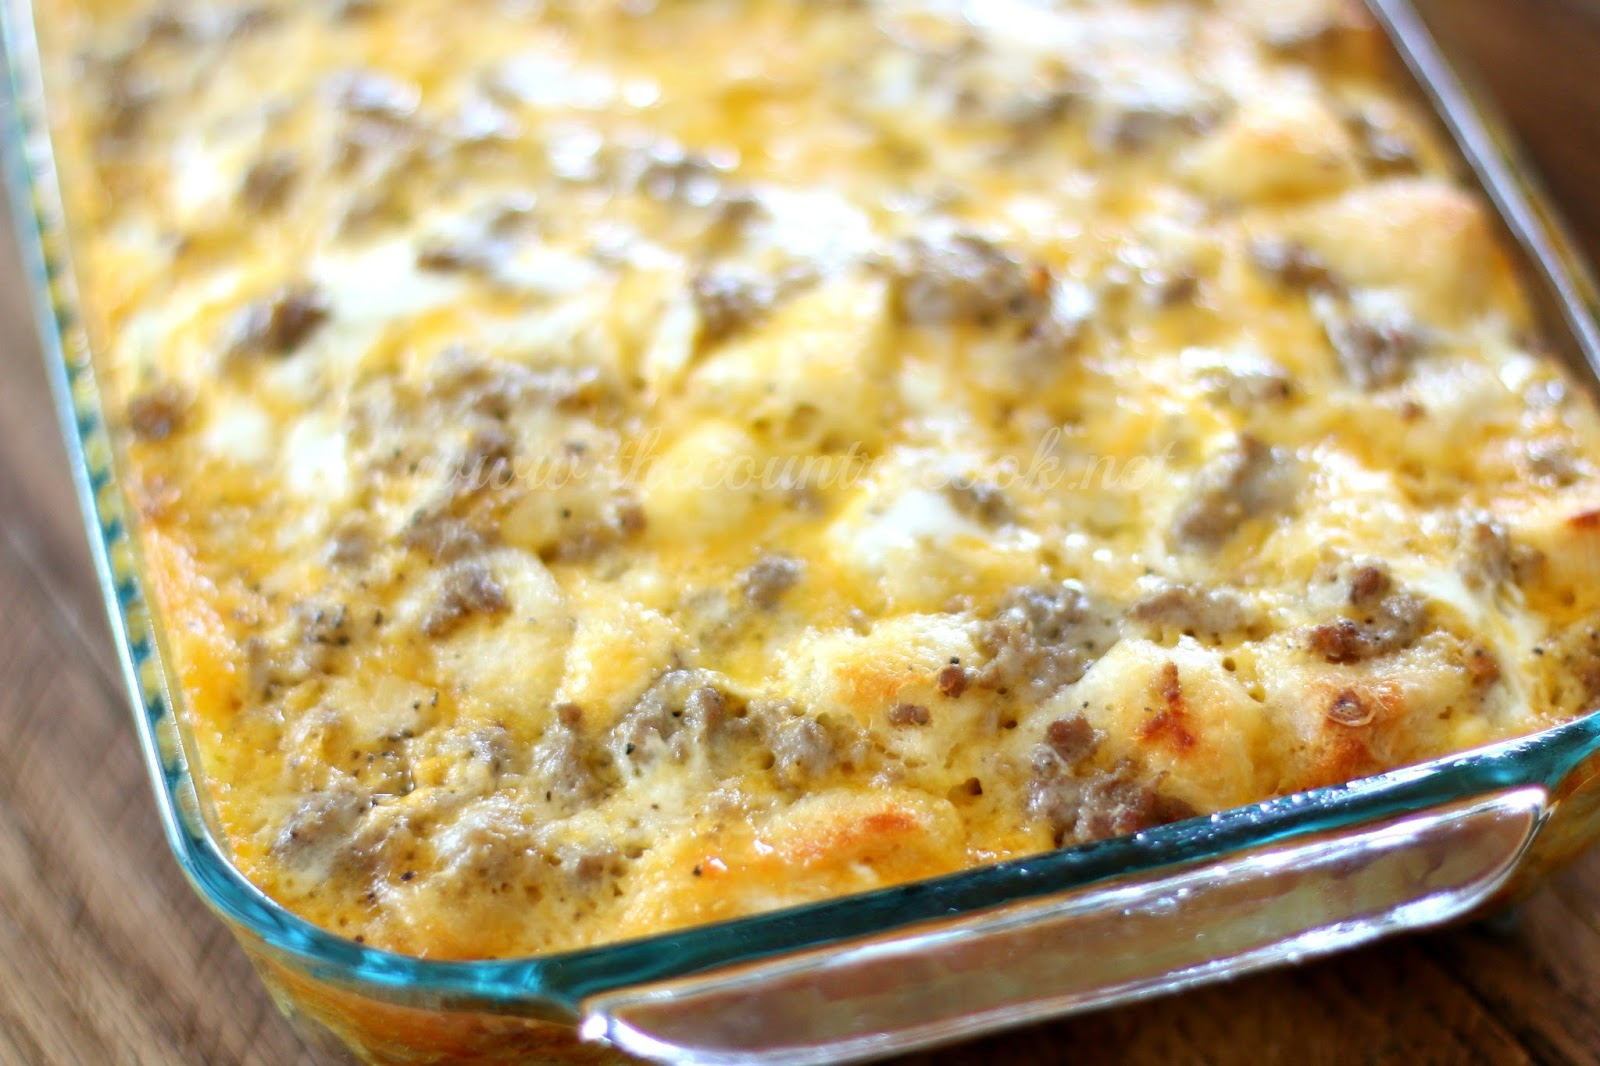 sausage egg and cheese bake